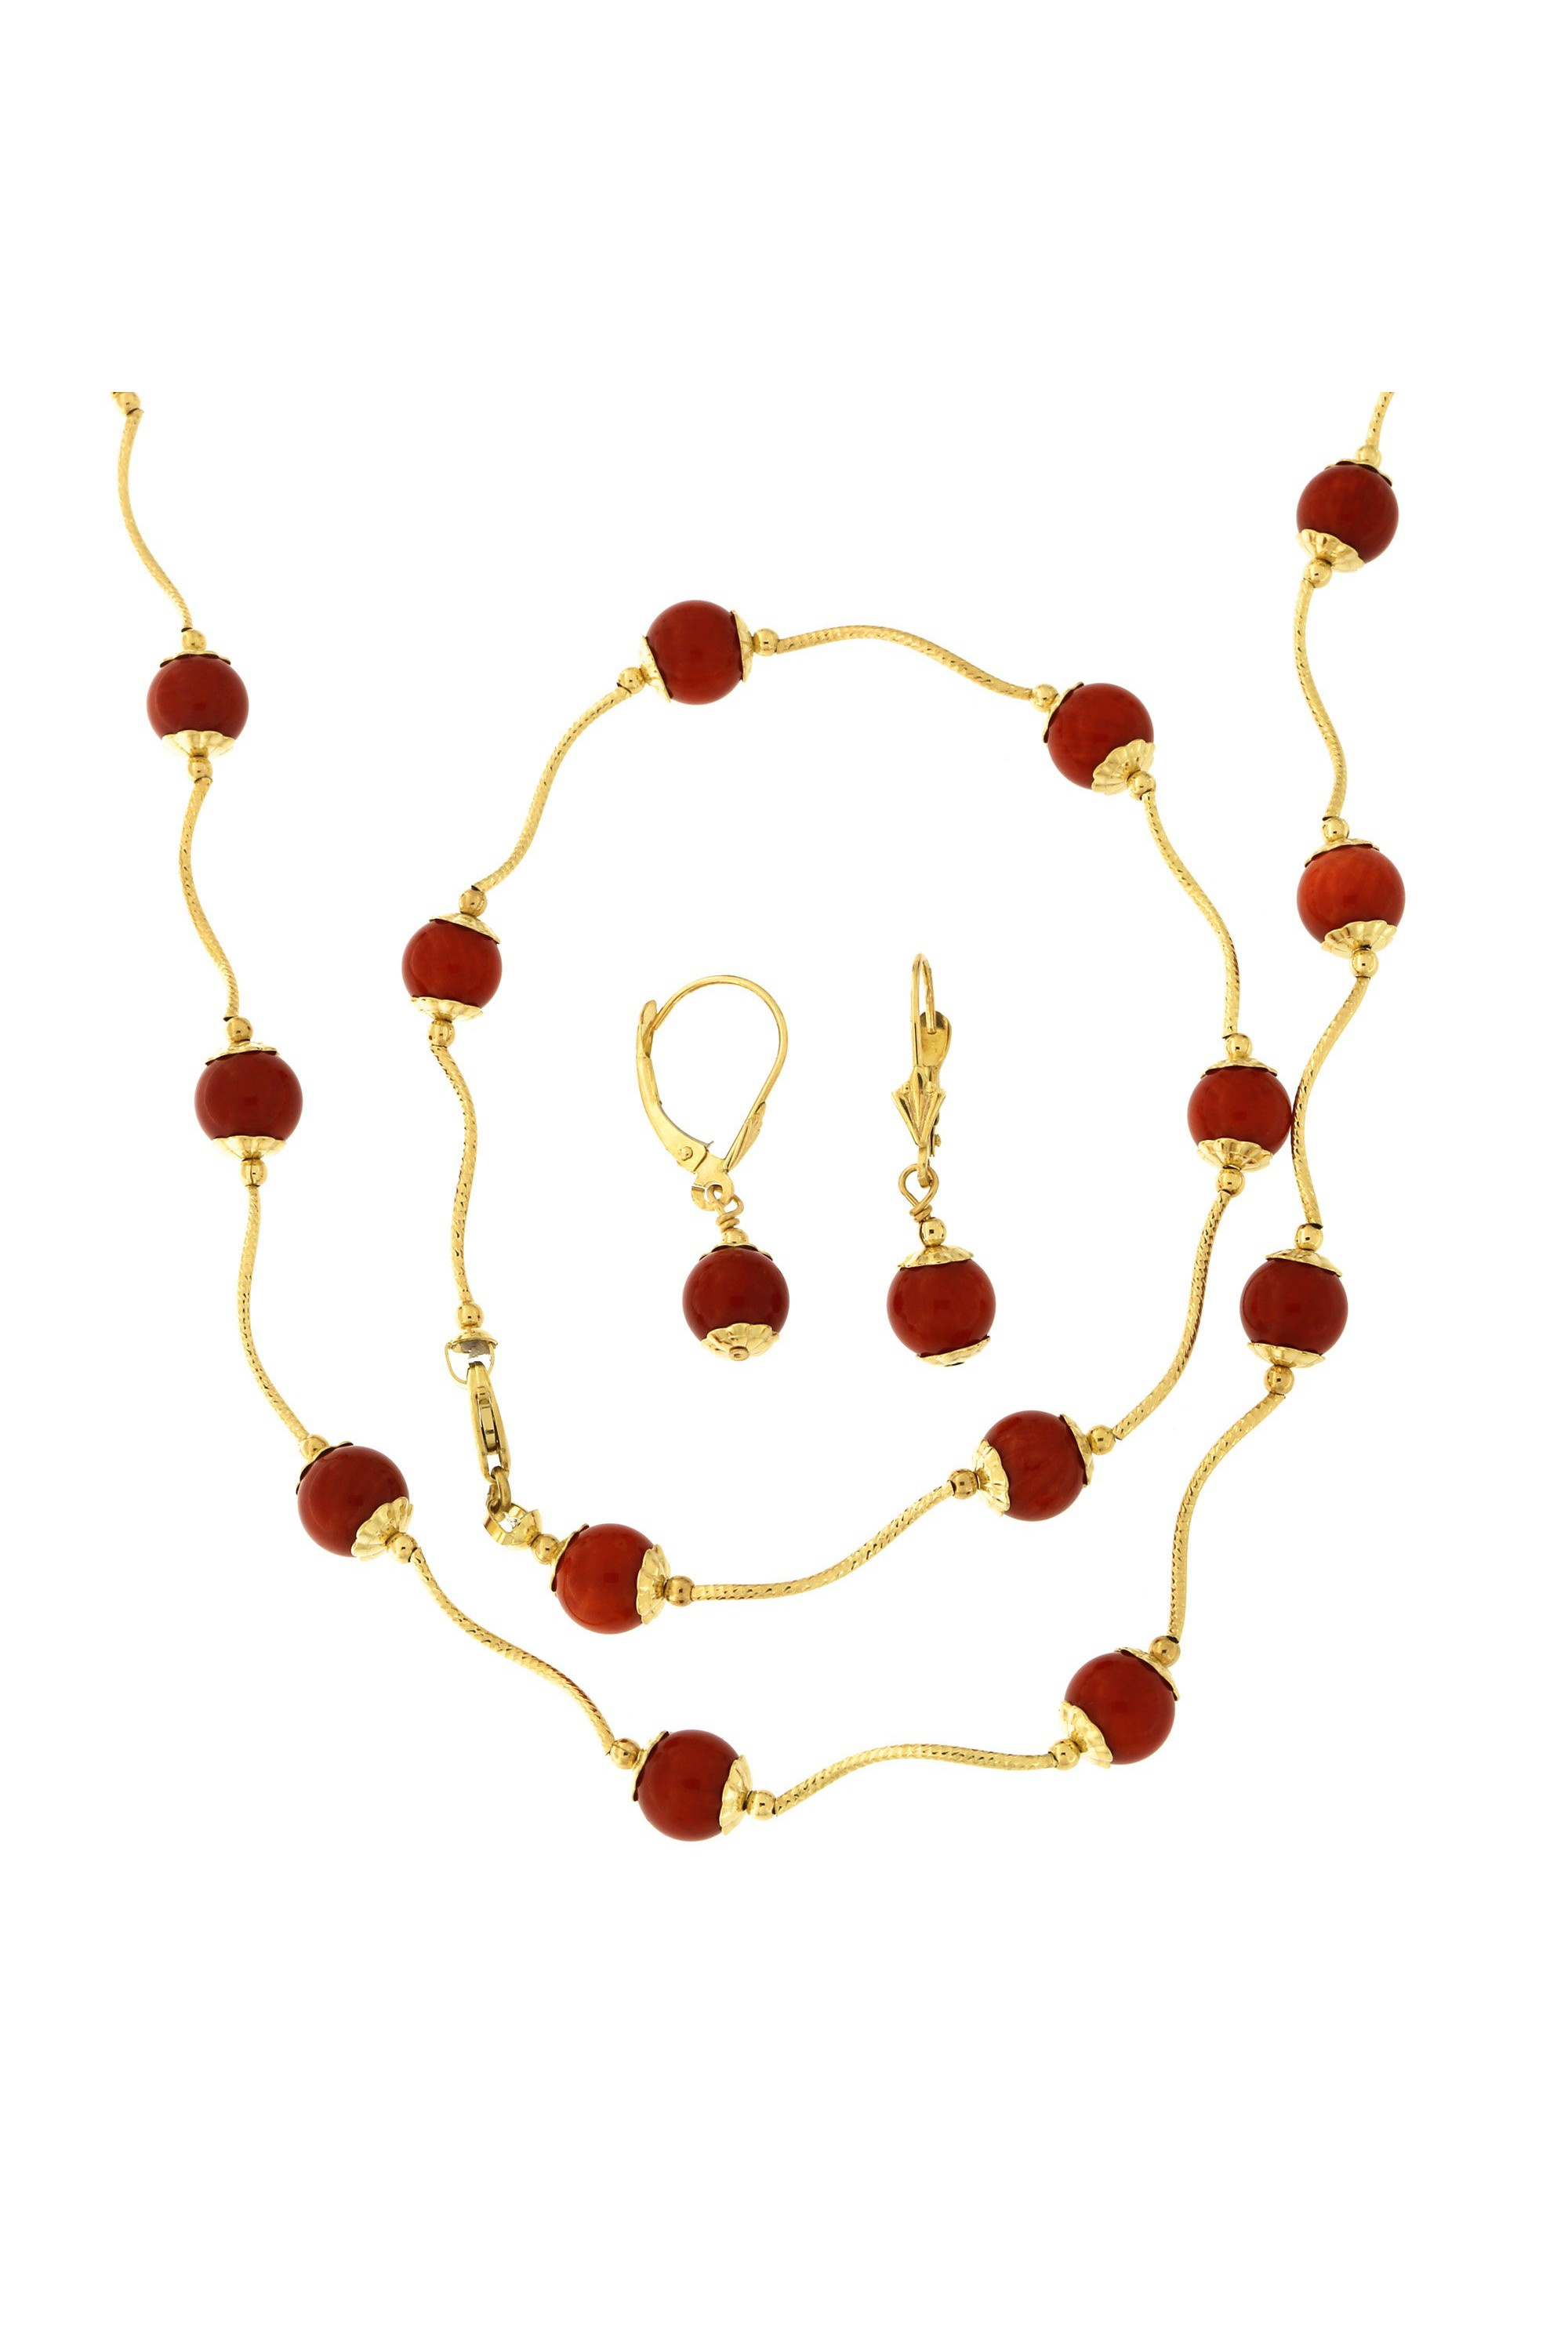 14k Yellow Gold Diamond Cut Capped Simulated Dark Coral Station Necklace, Earrings and Bracelet Set by